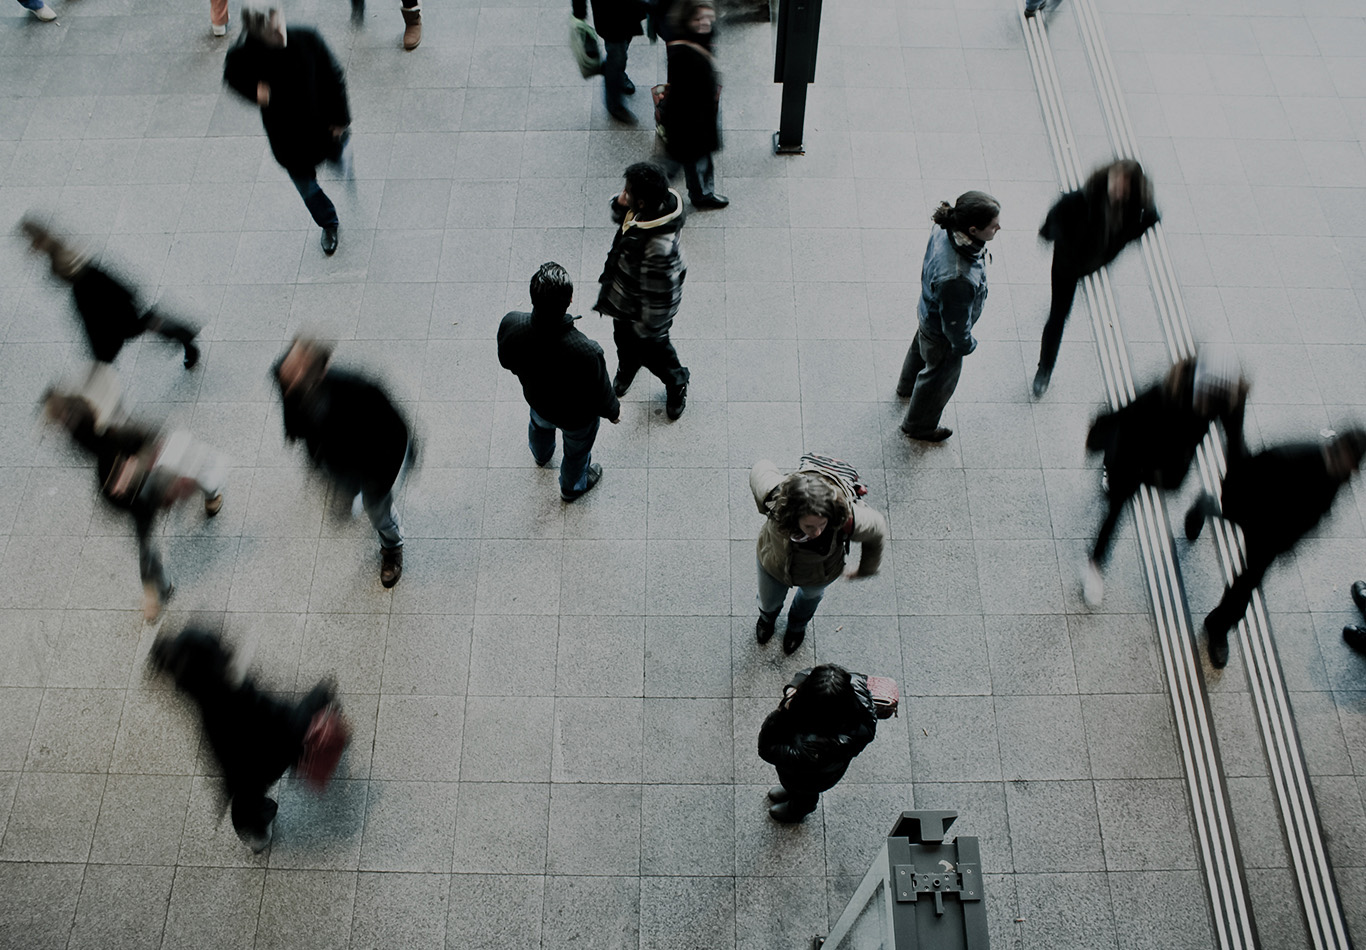 Five in-focus people are walking on a crowded floor